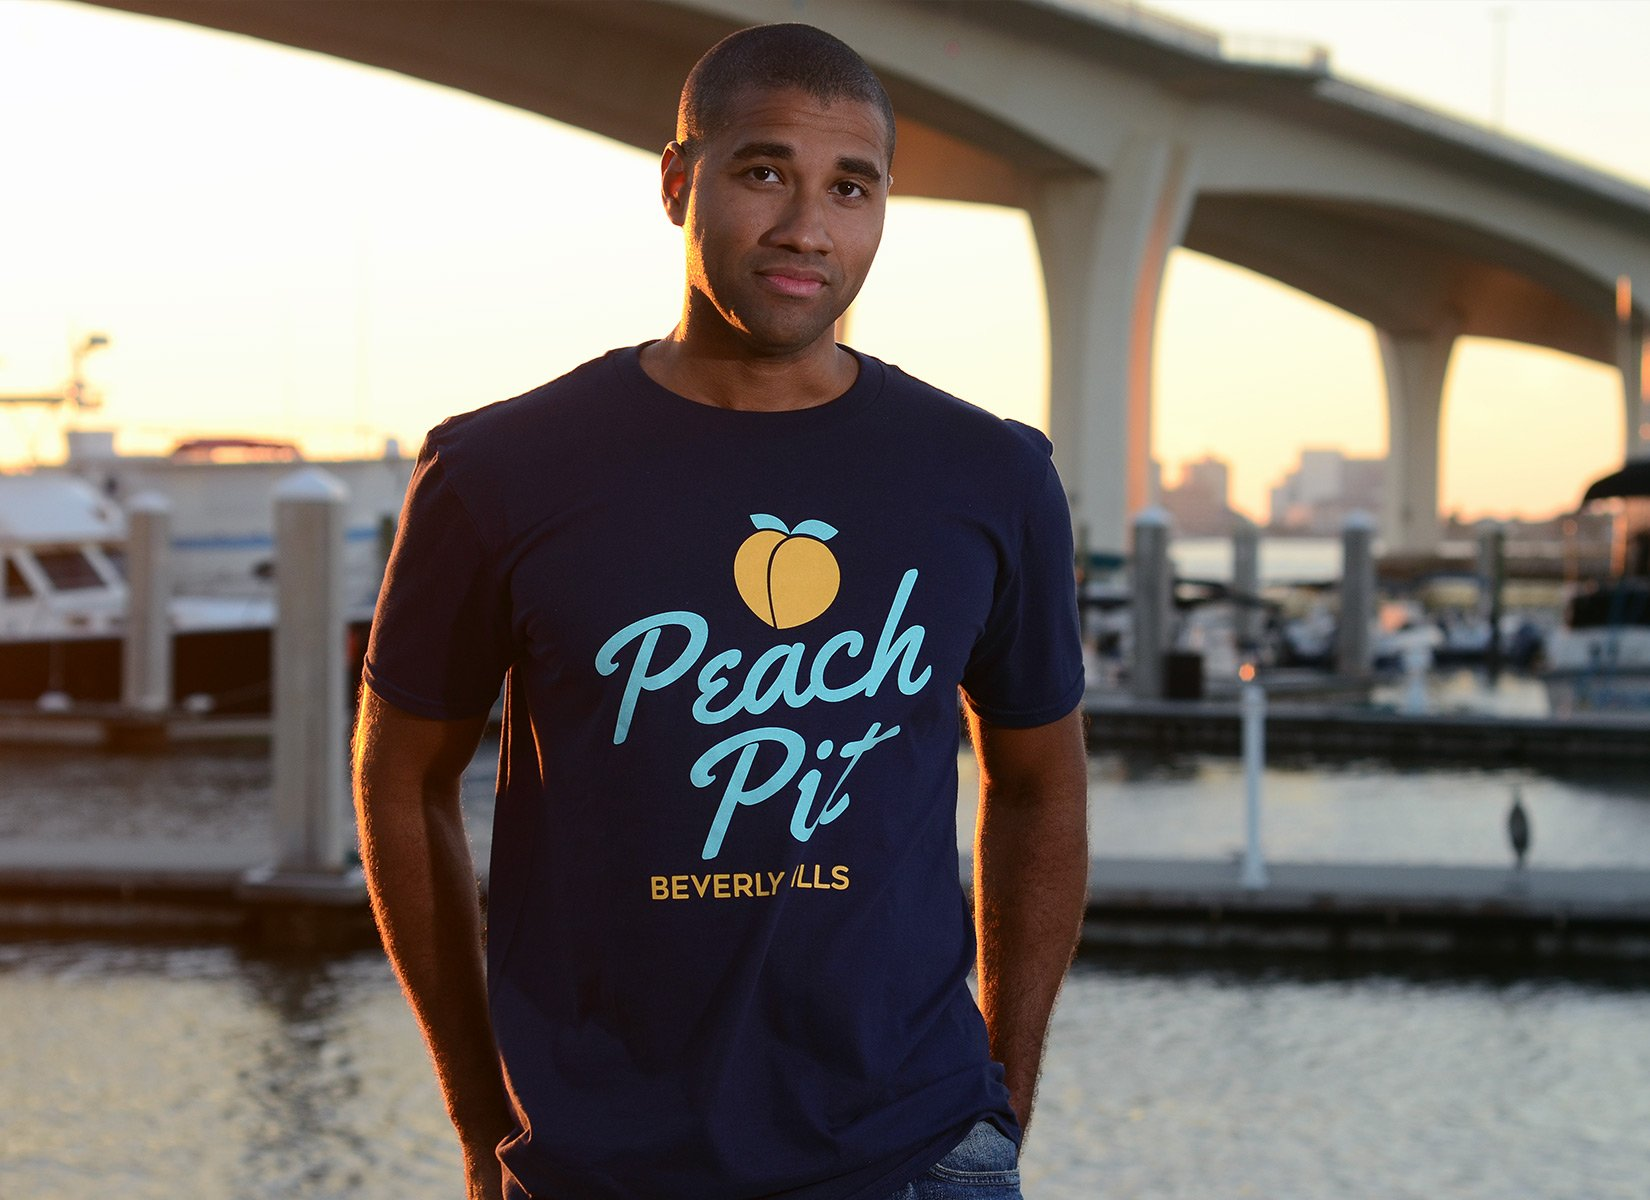 Peach Pit on Mens T-Shirt